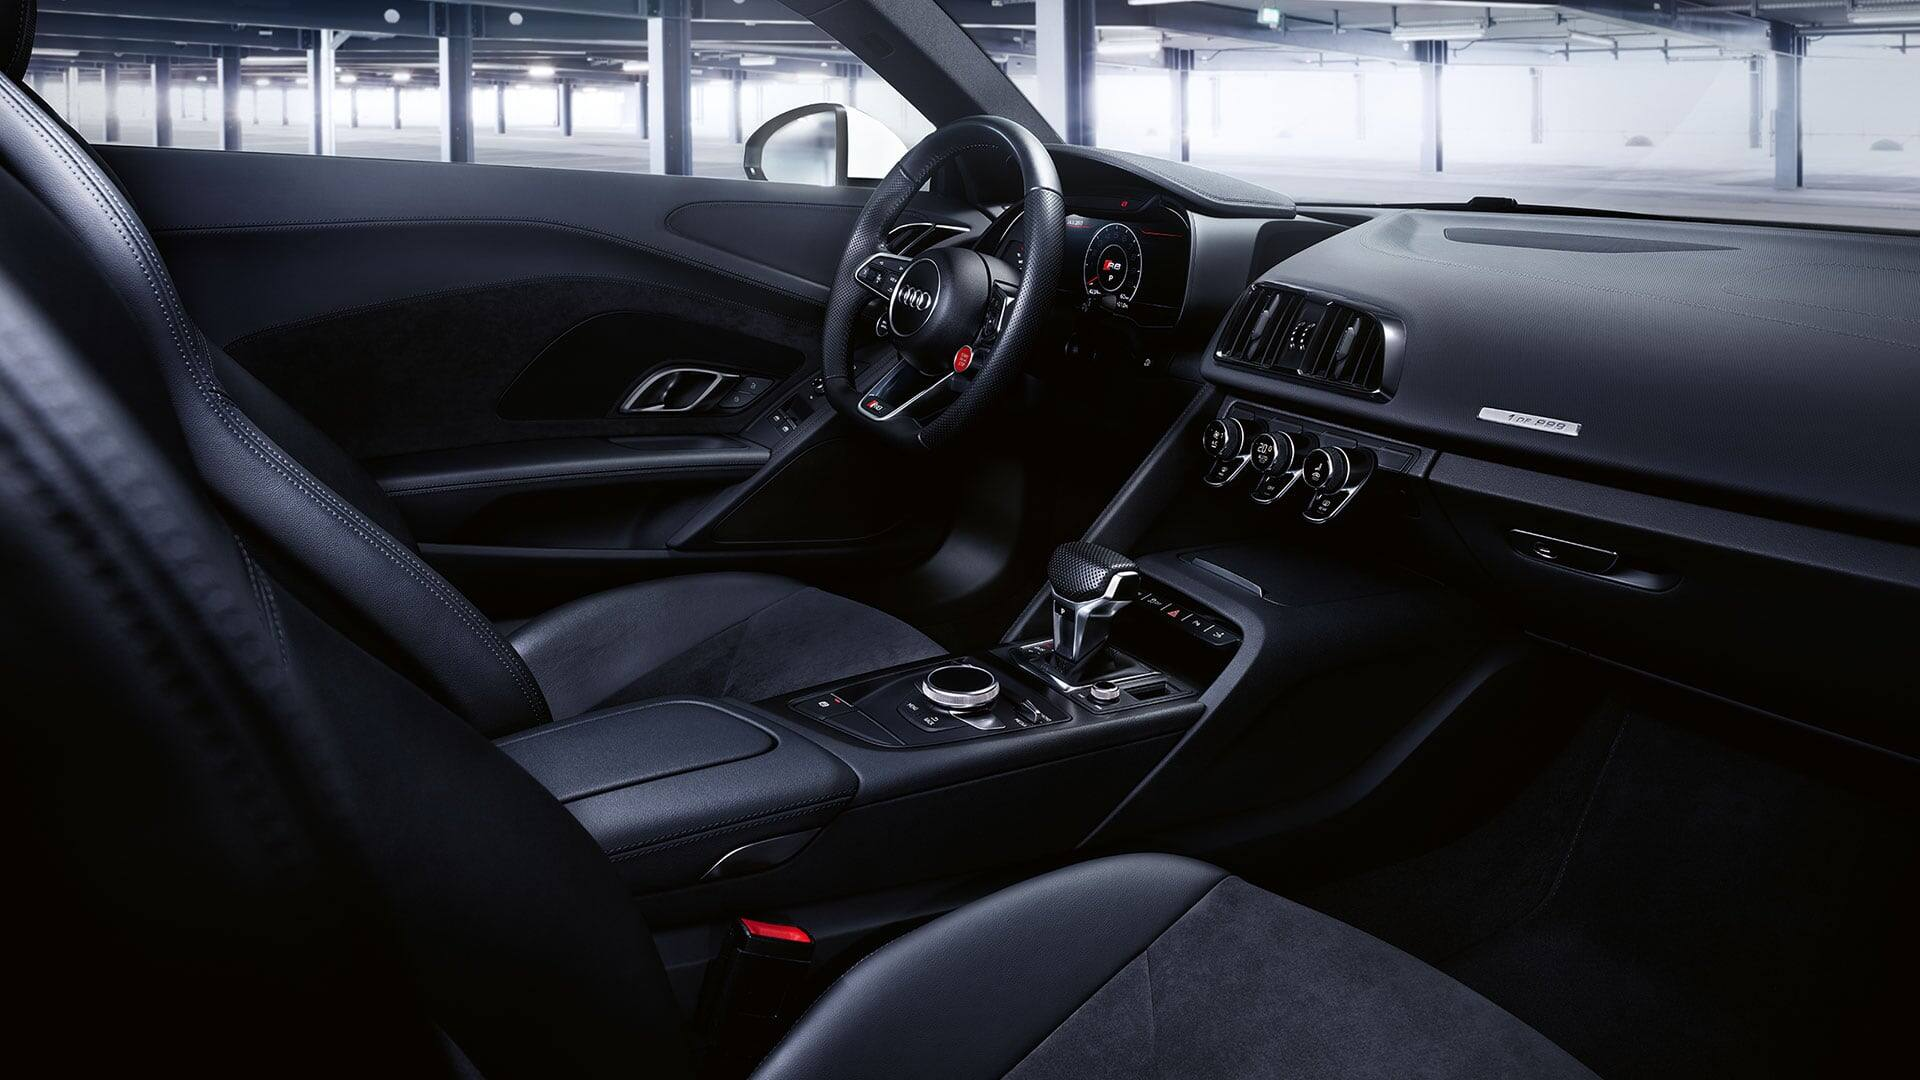 The optional R8 performance leather steering wheel and the standard R8 sports seats intensify that feeling of racing in the Audi R8 Coupé V10 RWS on top.